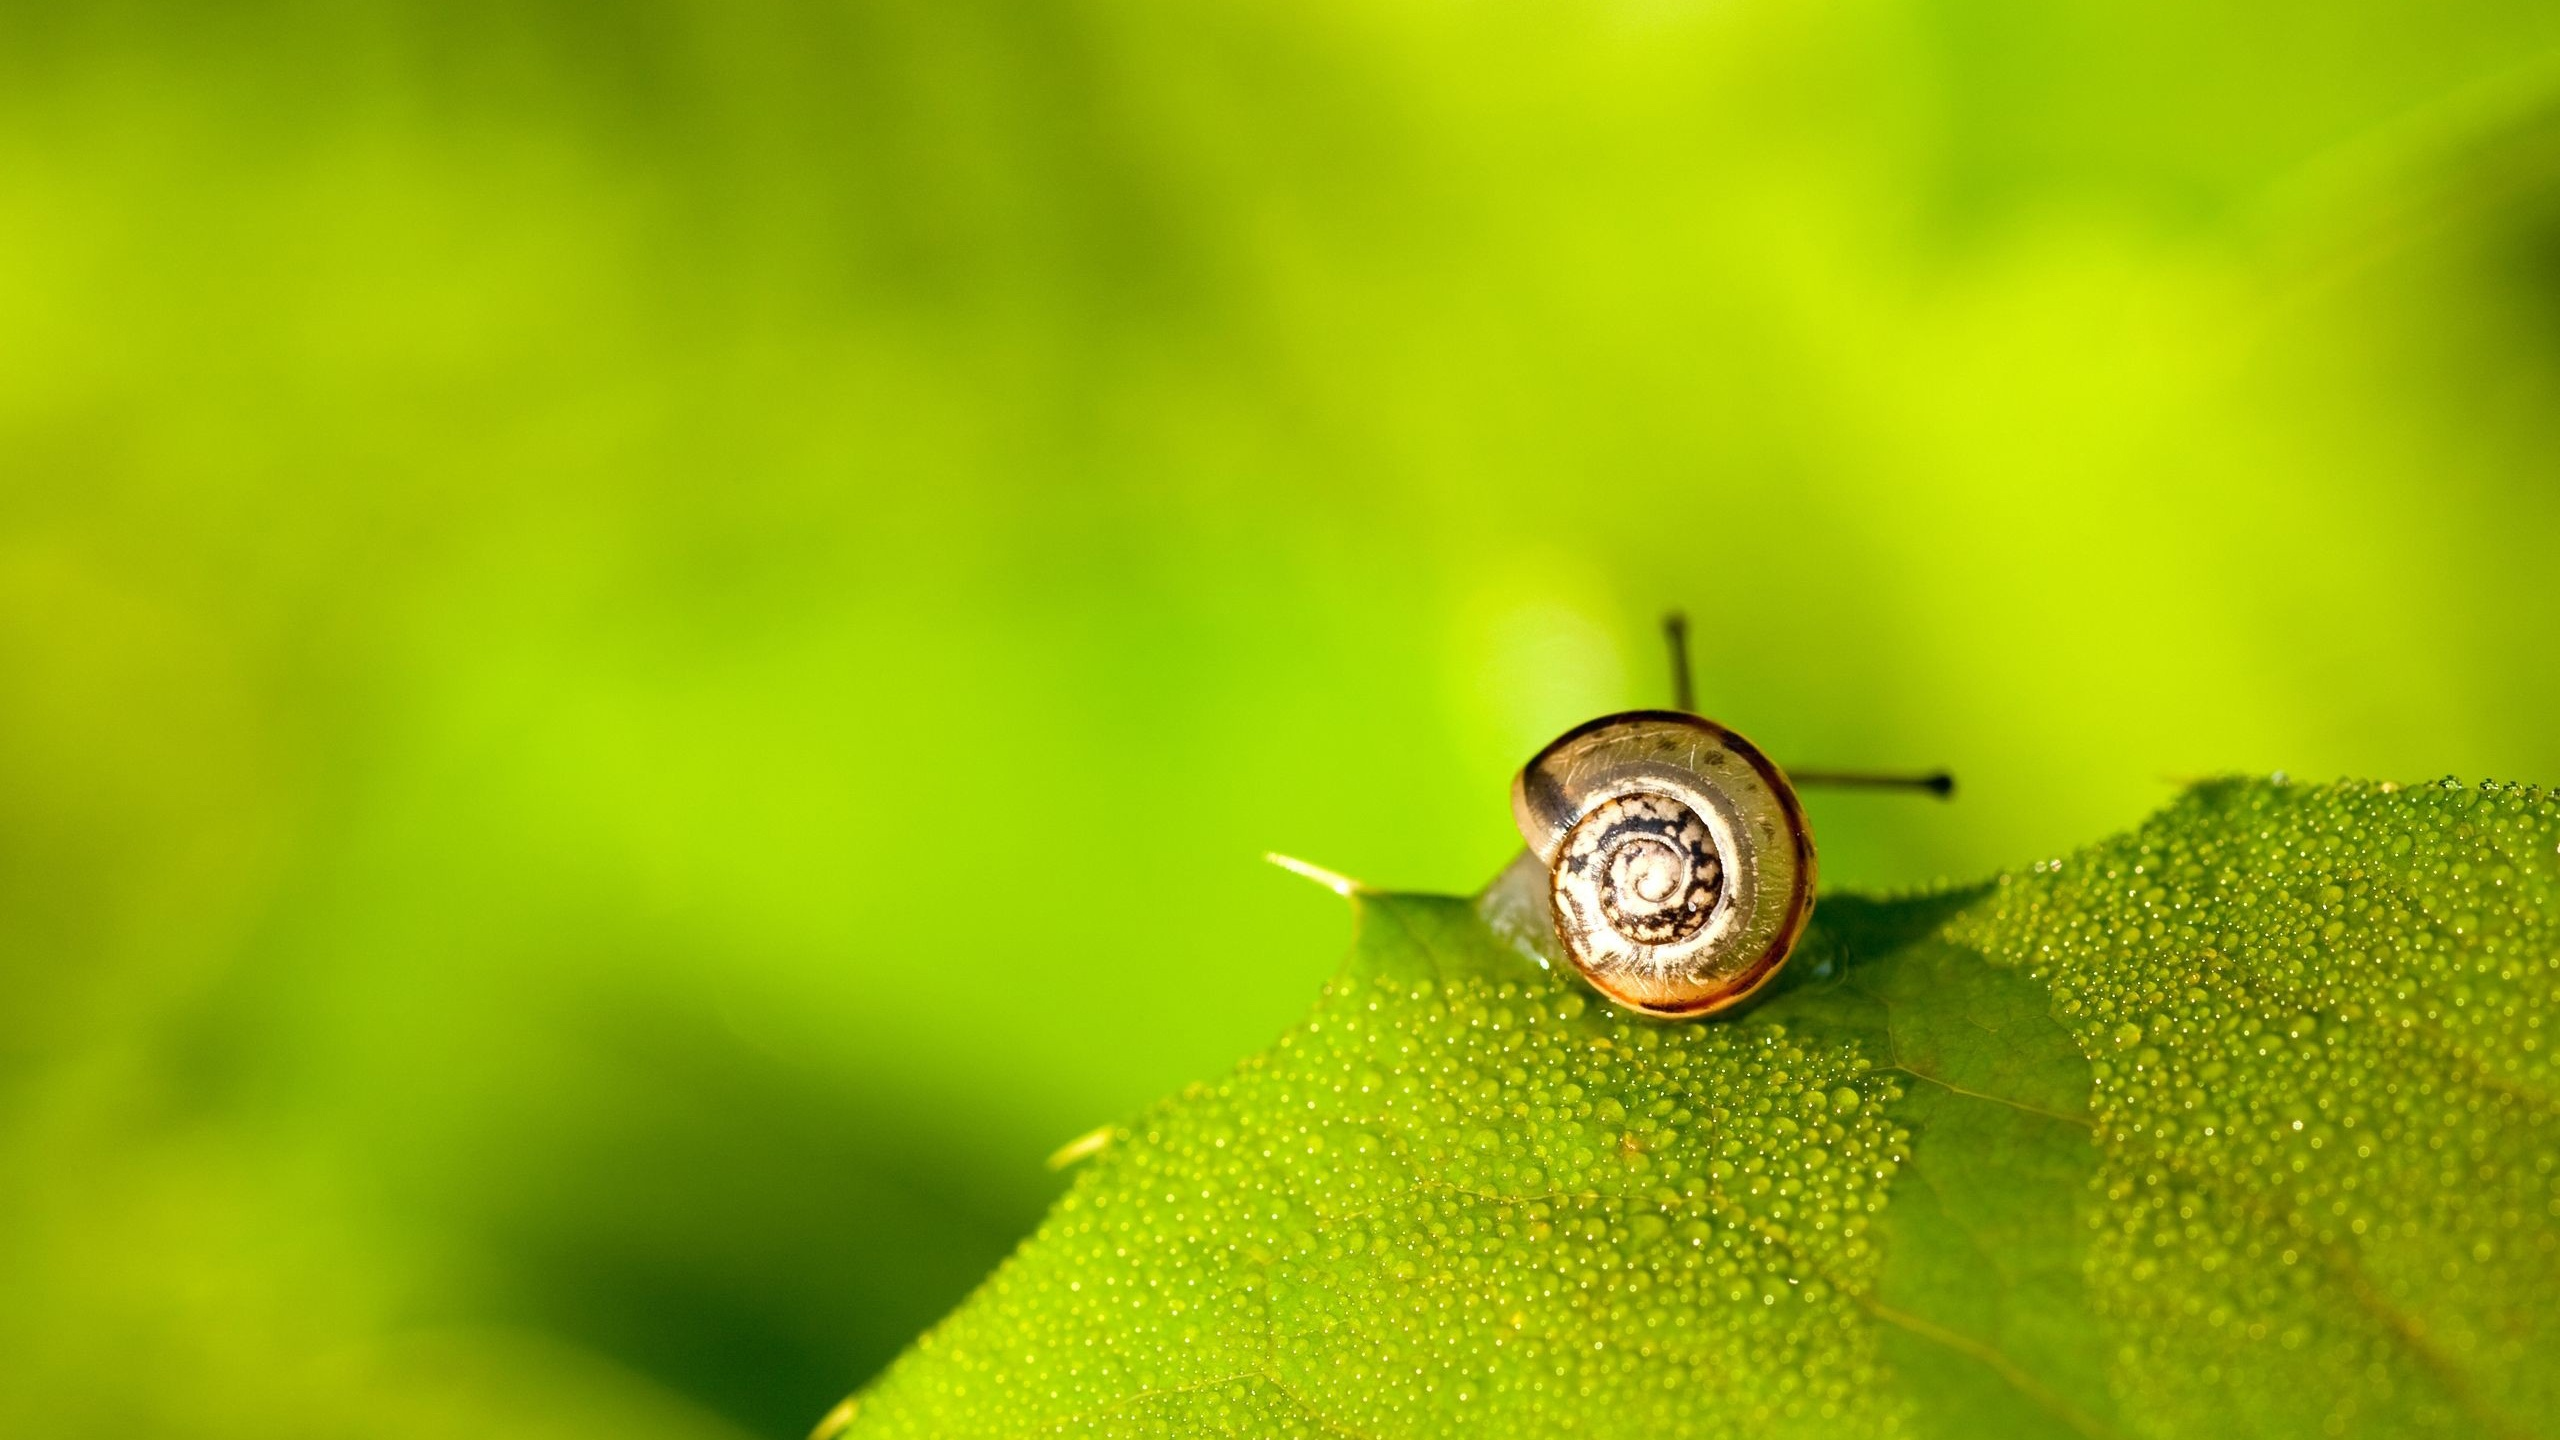 Cool Snail Wallpaper